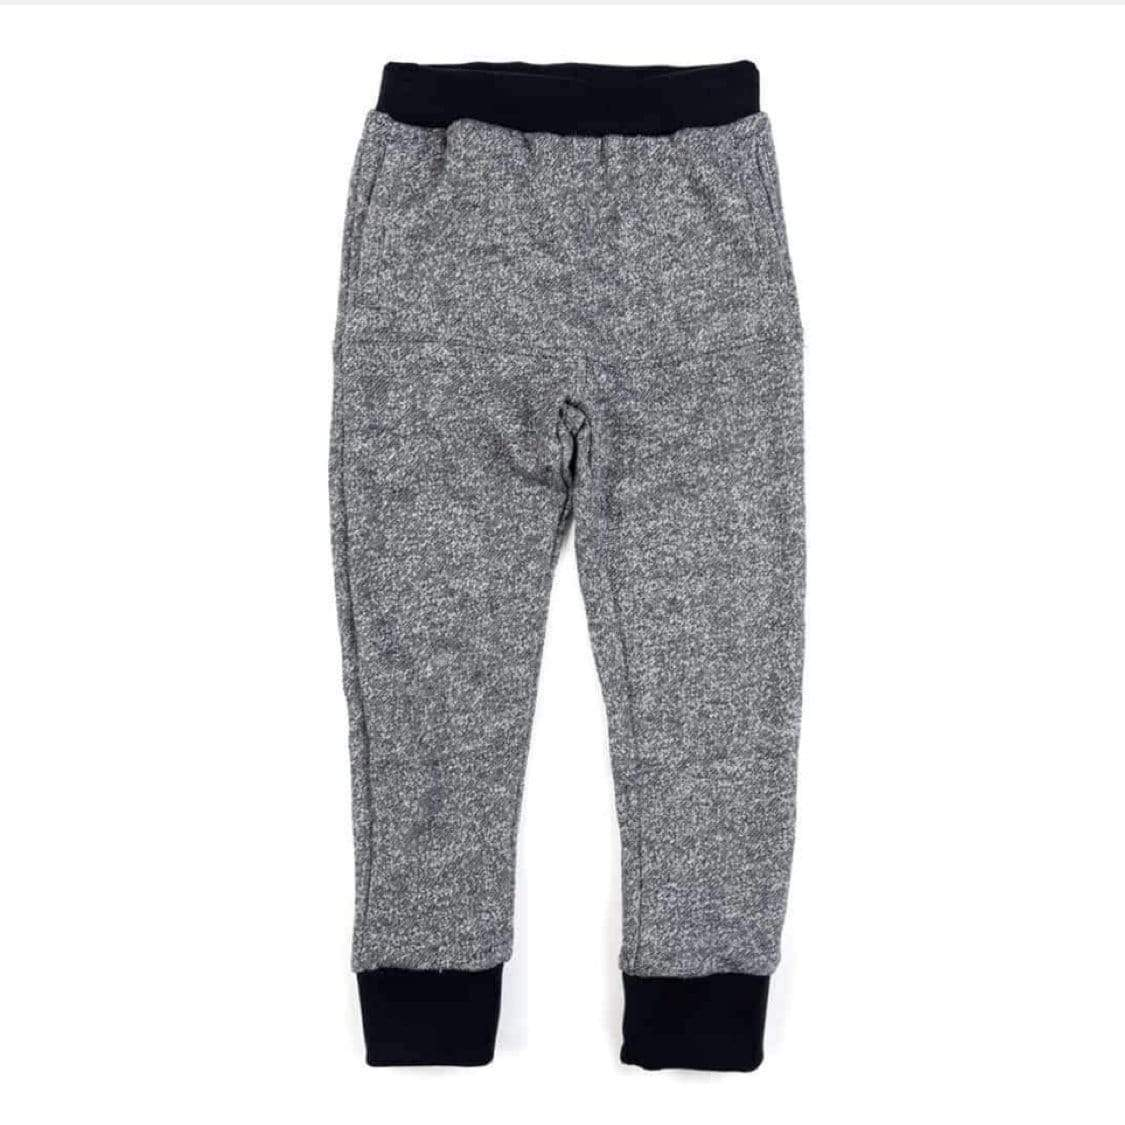 V2JKS - Appaman Boys Patriot Blue Melange Juku Sweats Pants Appaman